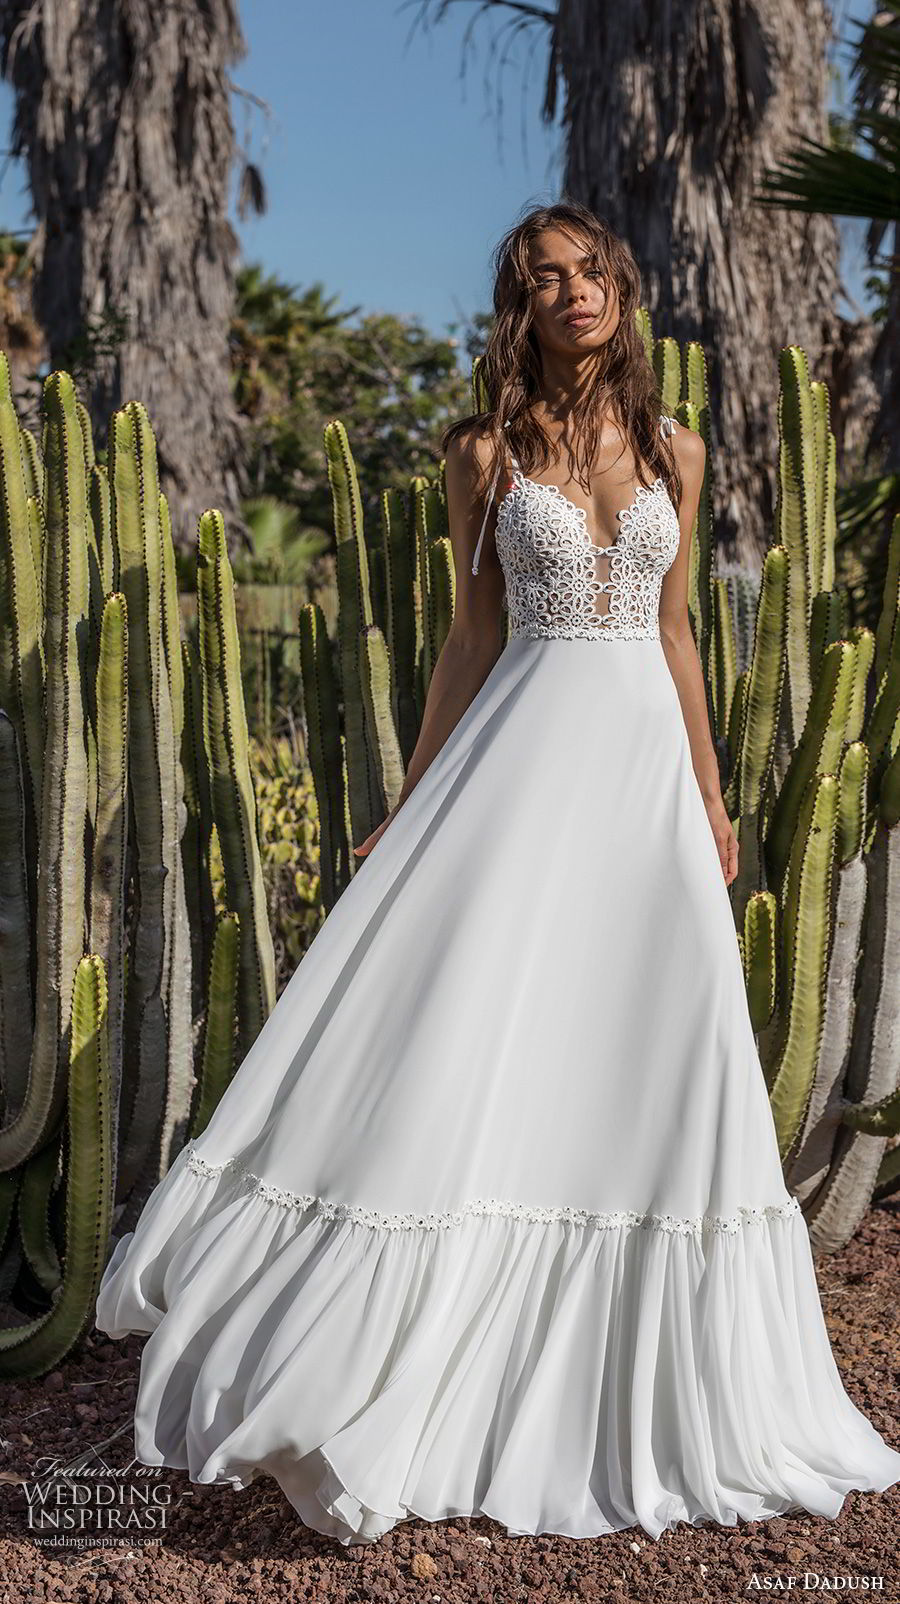 asaf dadush 2018 bridal sleeveless spaghetti strap deep plunging sweetheart neckline heavily embellished bodice bohemian a line wedding dress open back sweep train (8) mv